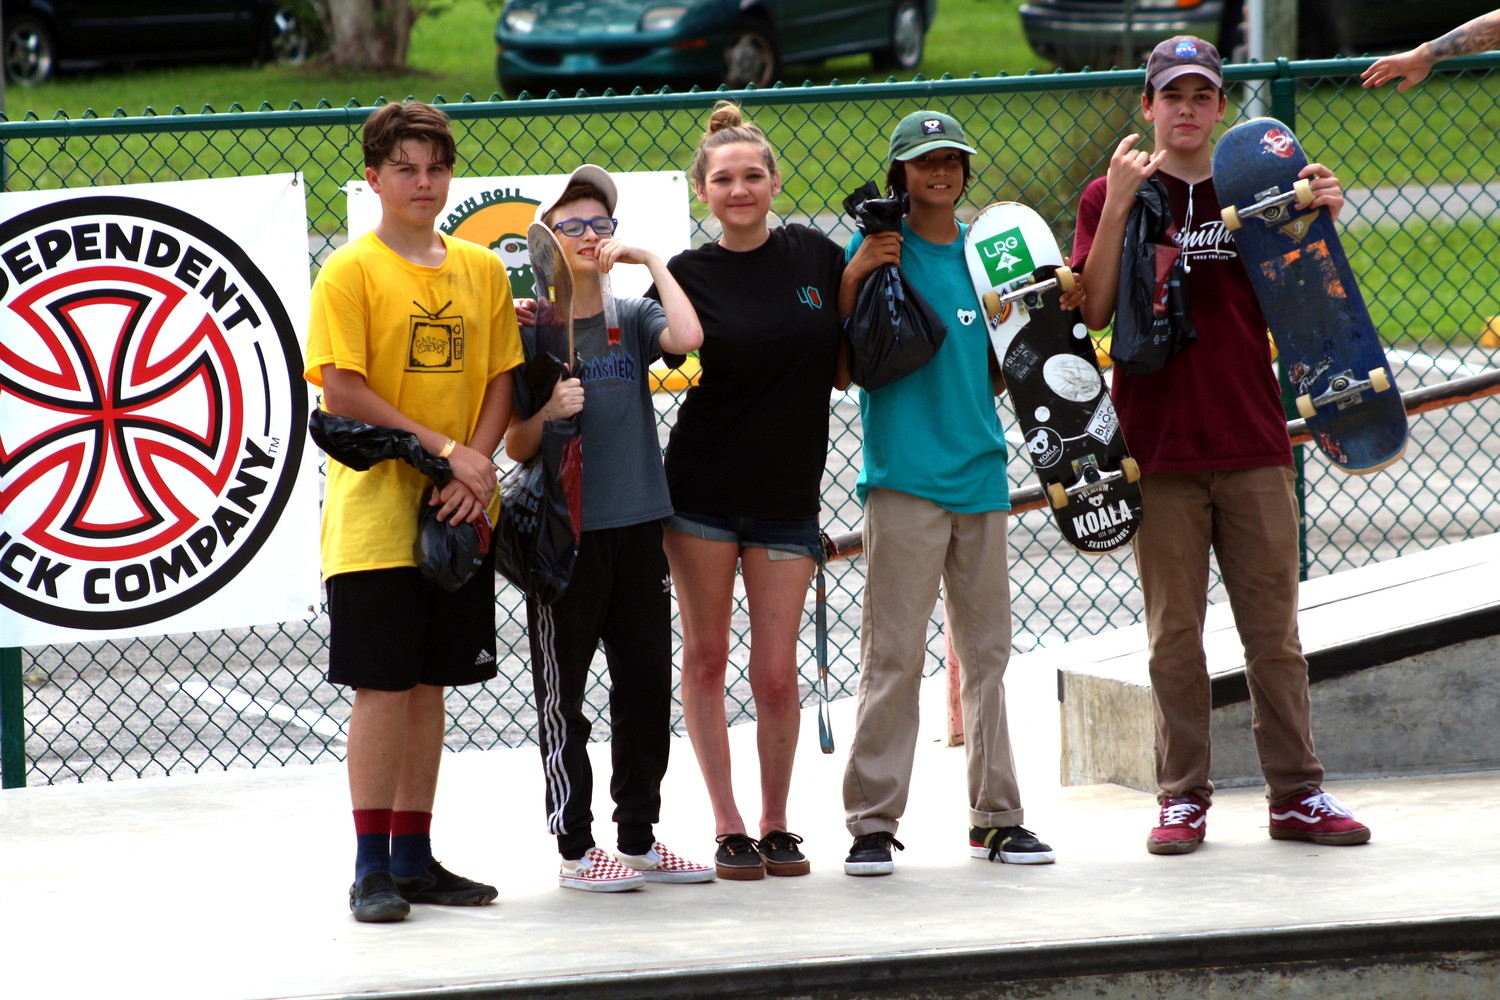 Winners in the 15-Unders included, left to right, Owen Kirkpatrick, Brody Harris (First place), prize girl Courtney Green, Marcus Caserias and John Lee.